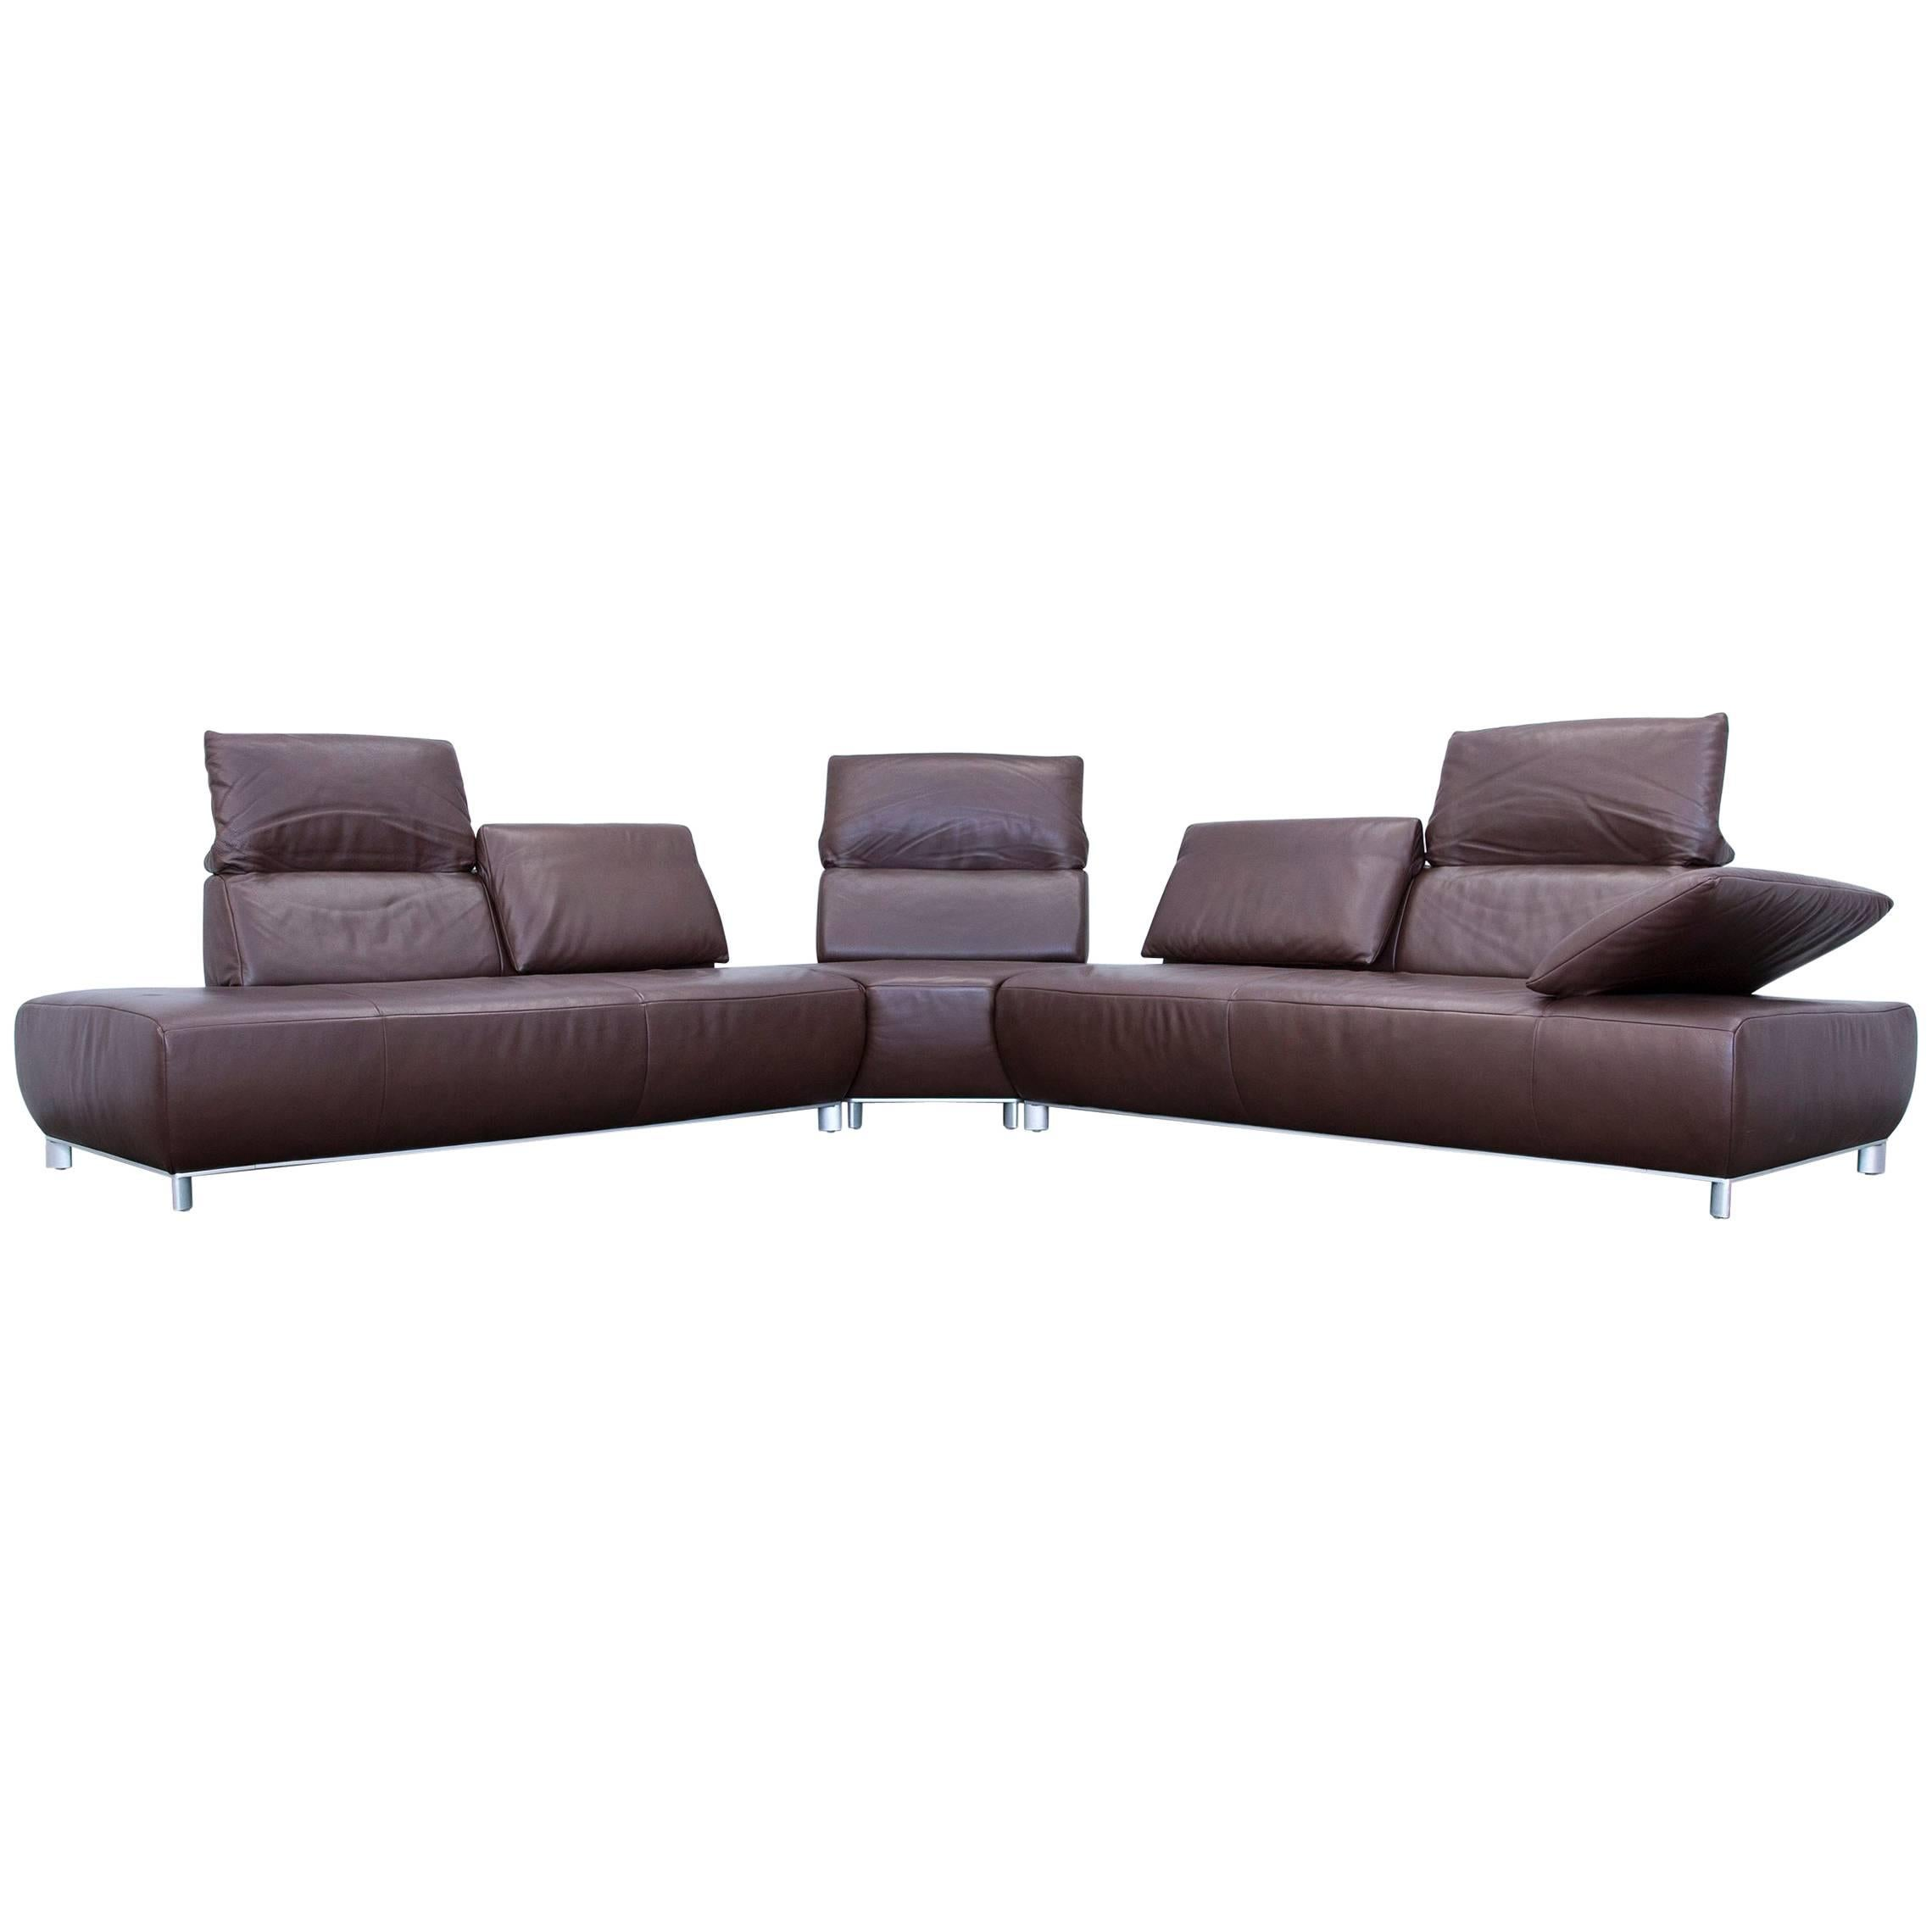 Awesome Koinor Volare Corner Sofa Leather Mocca Brown Function Couch Modern  For Sale With Koinor Sofa